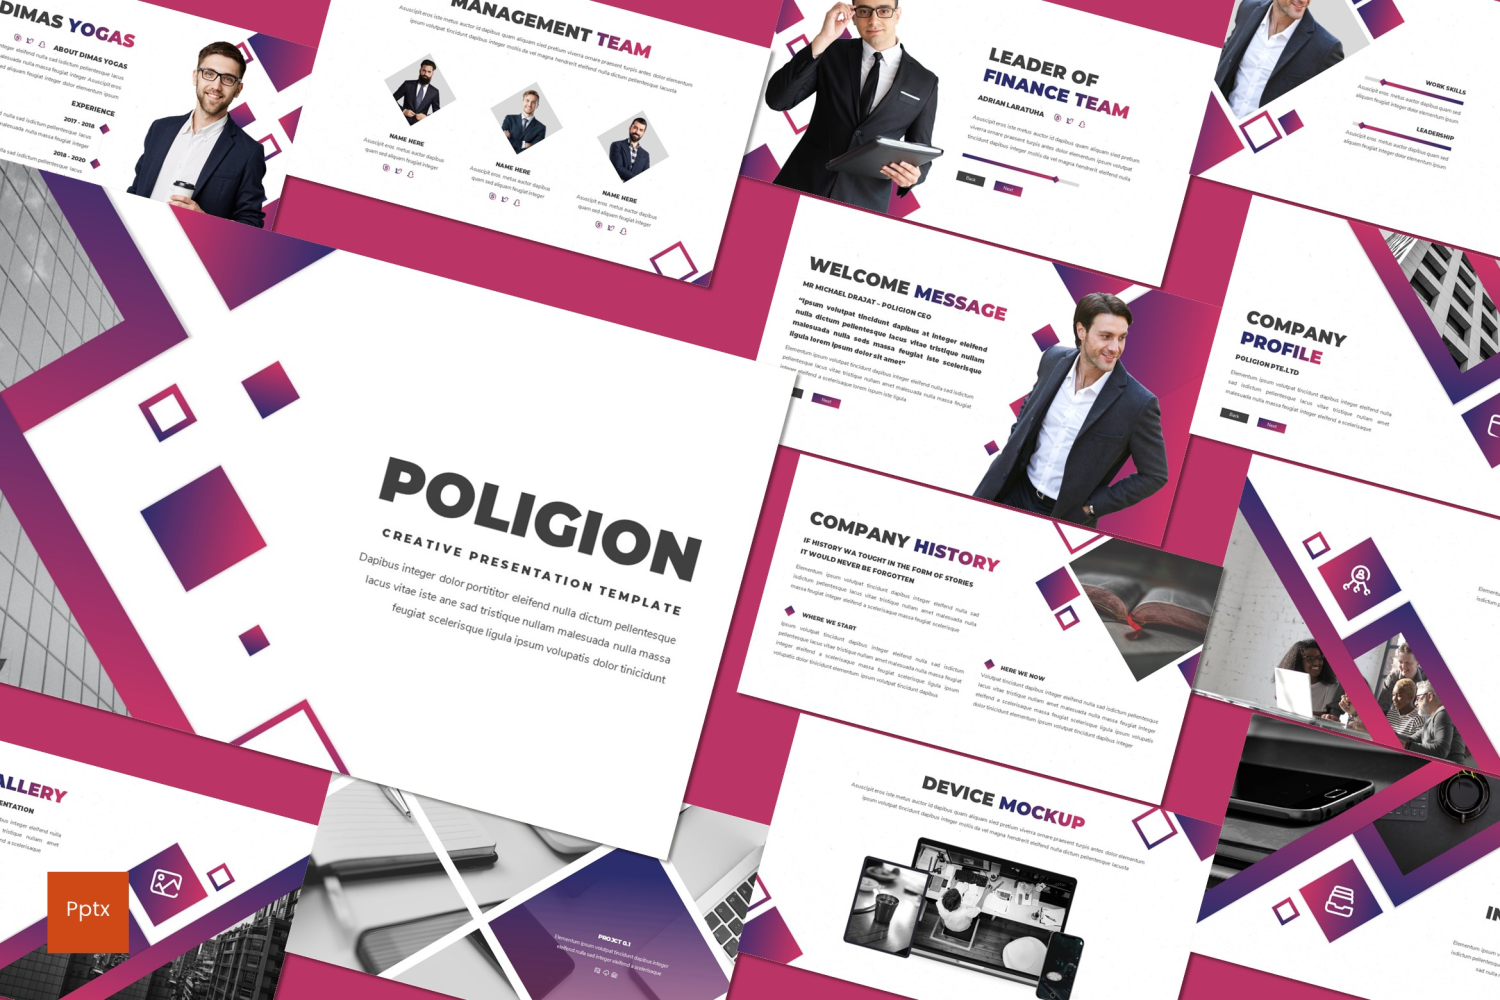 Poligion PowerPoint Template